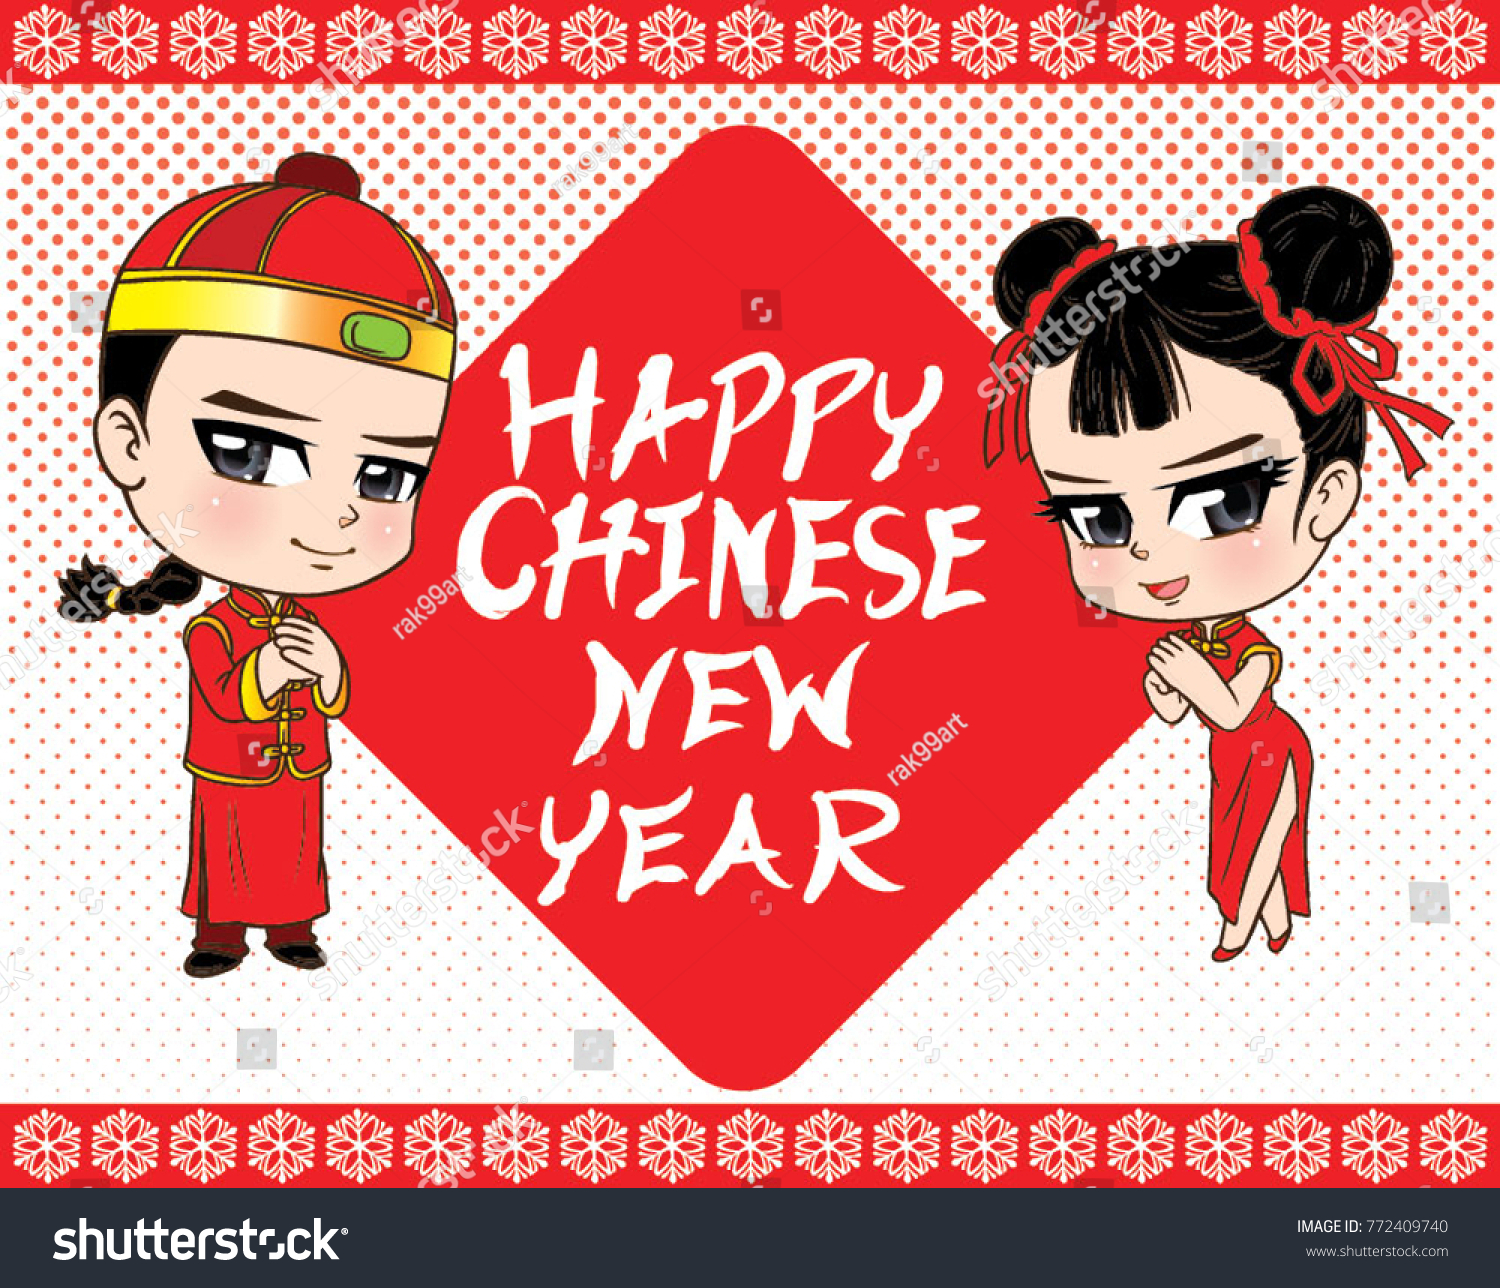 cute couple happy chinese new year greetings